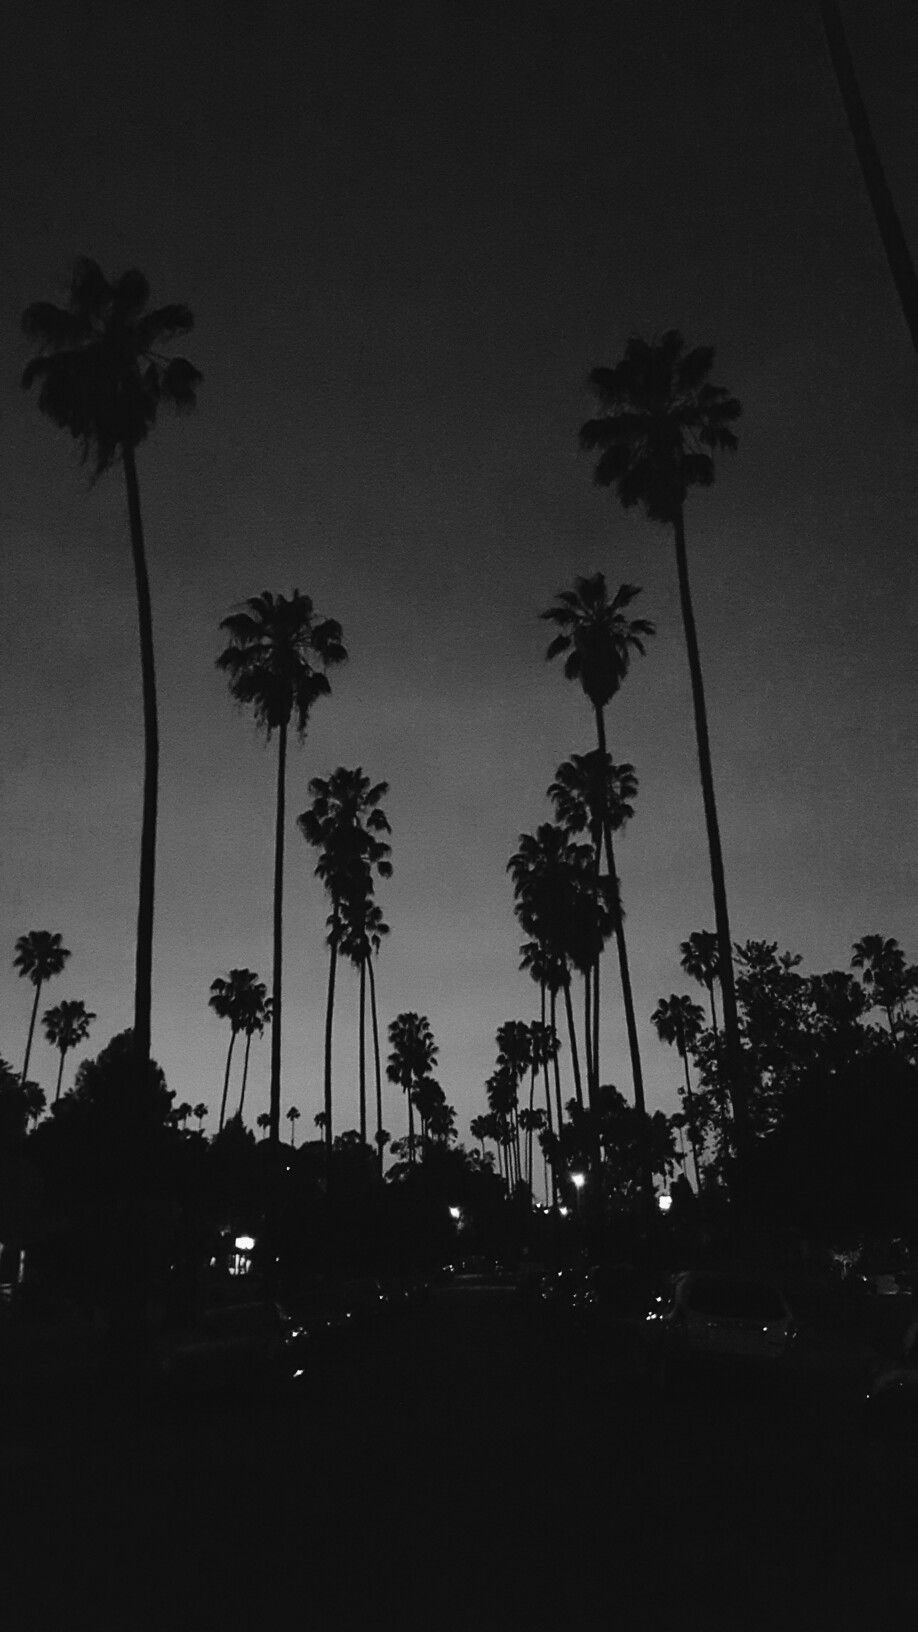 Echo Park Lake In 2019 Black White Aesthetic Dark